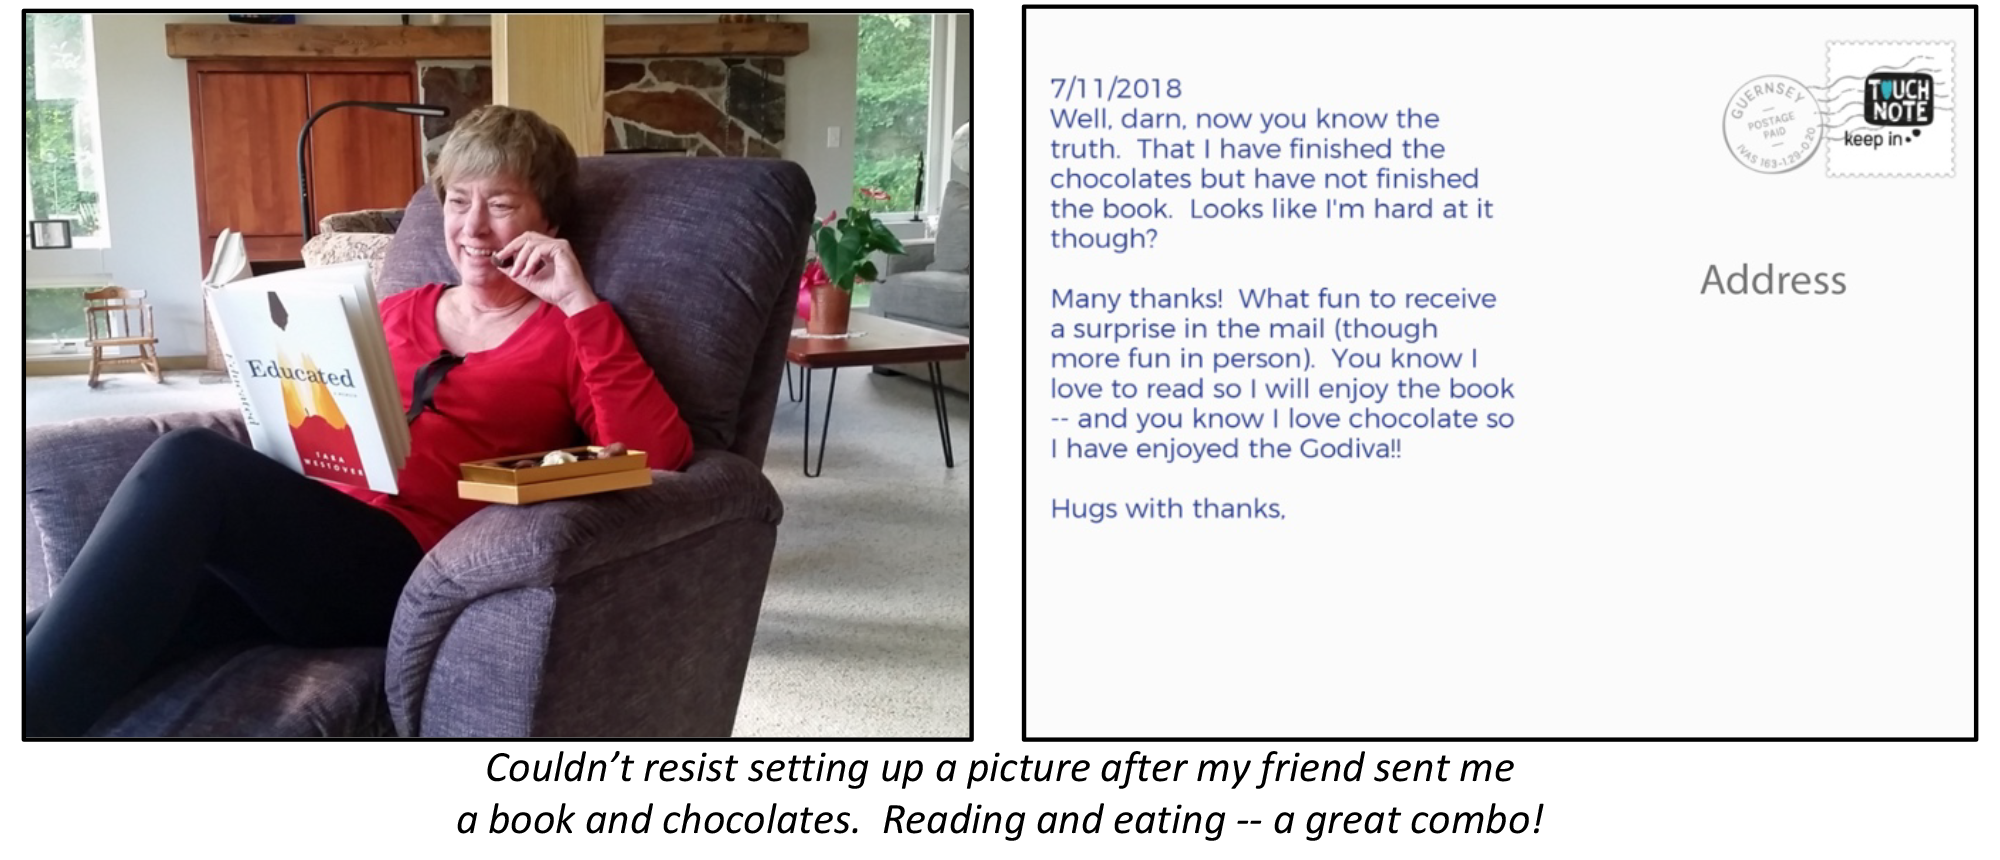 The image shows a photo of a person reading a book and munching on chocolates for the front of the postcard and a picture of a thank you note and address space for the back of the postcard.